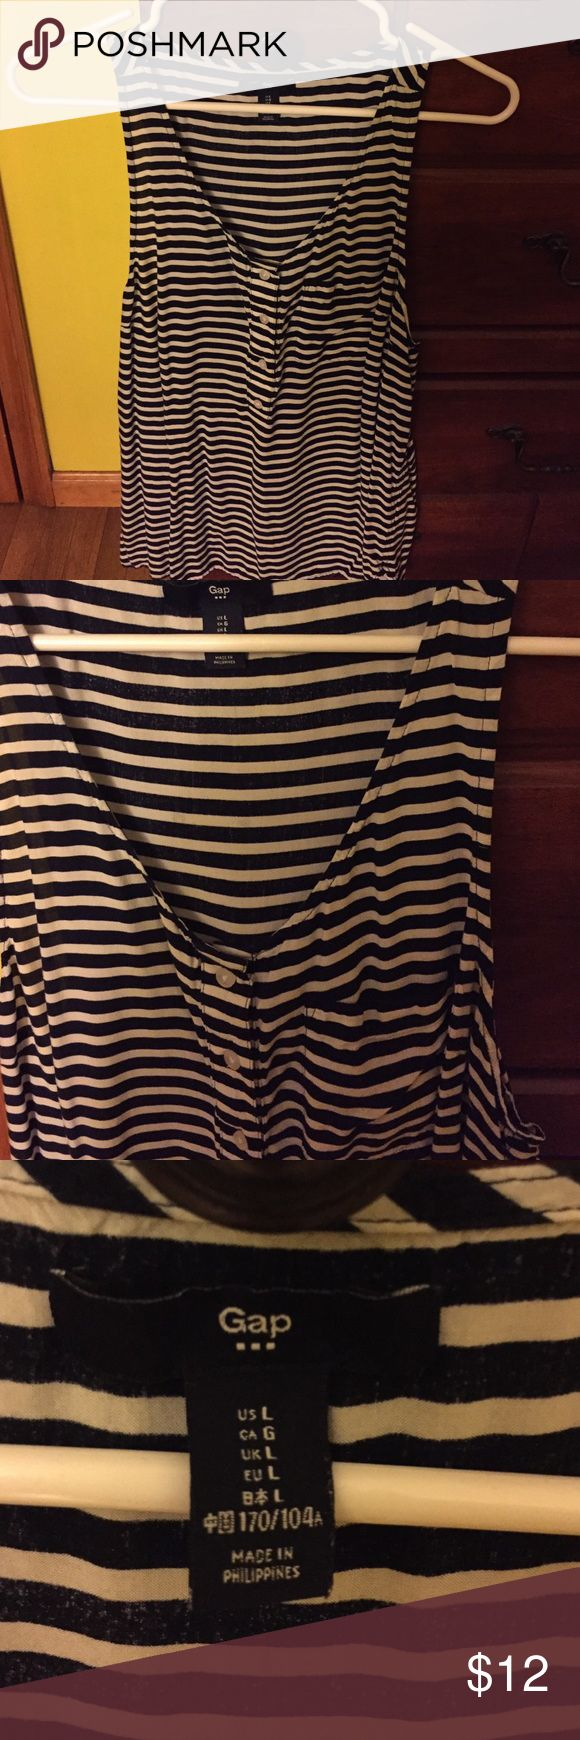 Women's tank top Blue and white stripes tank top with little chest pocket and buttons GAP Tops Tank Tops